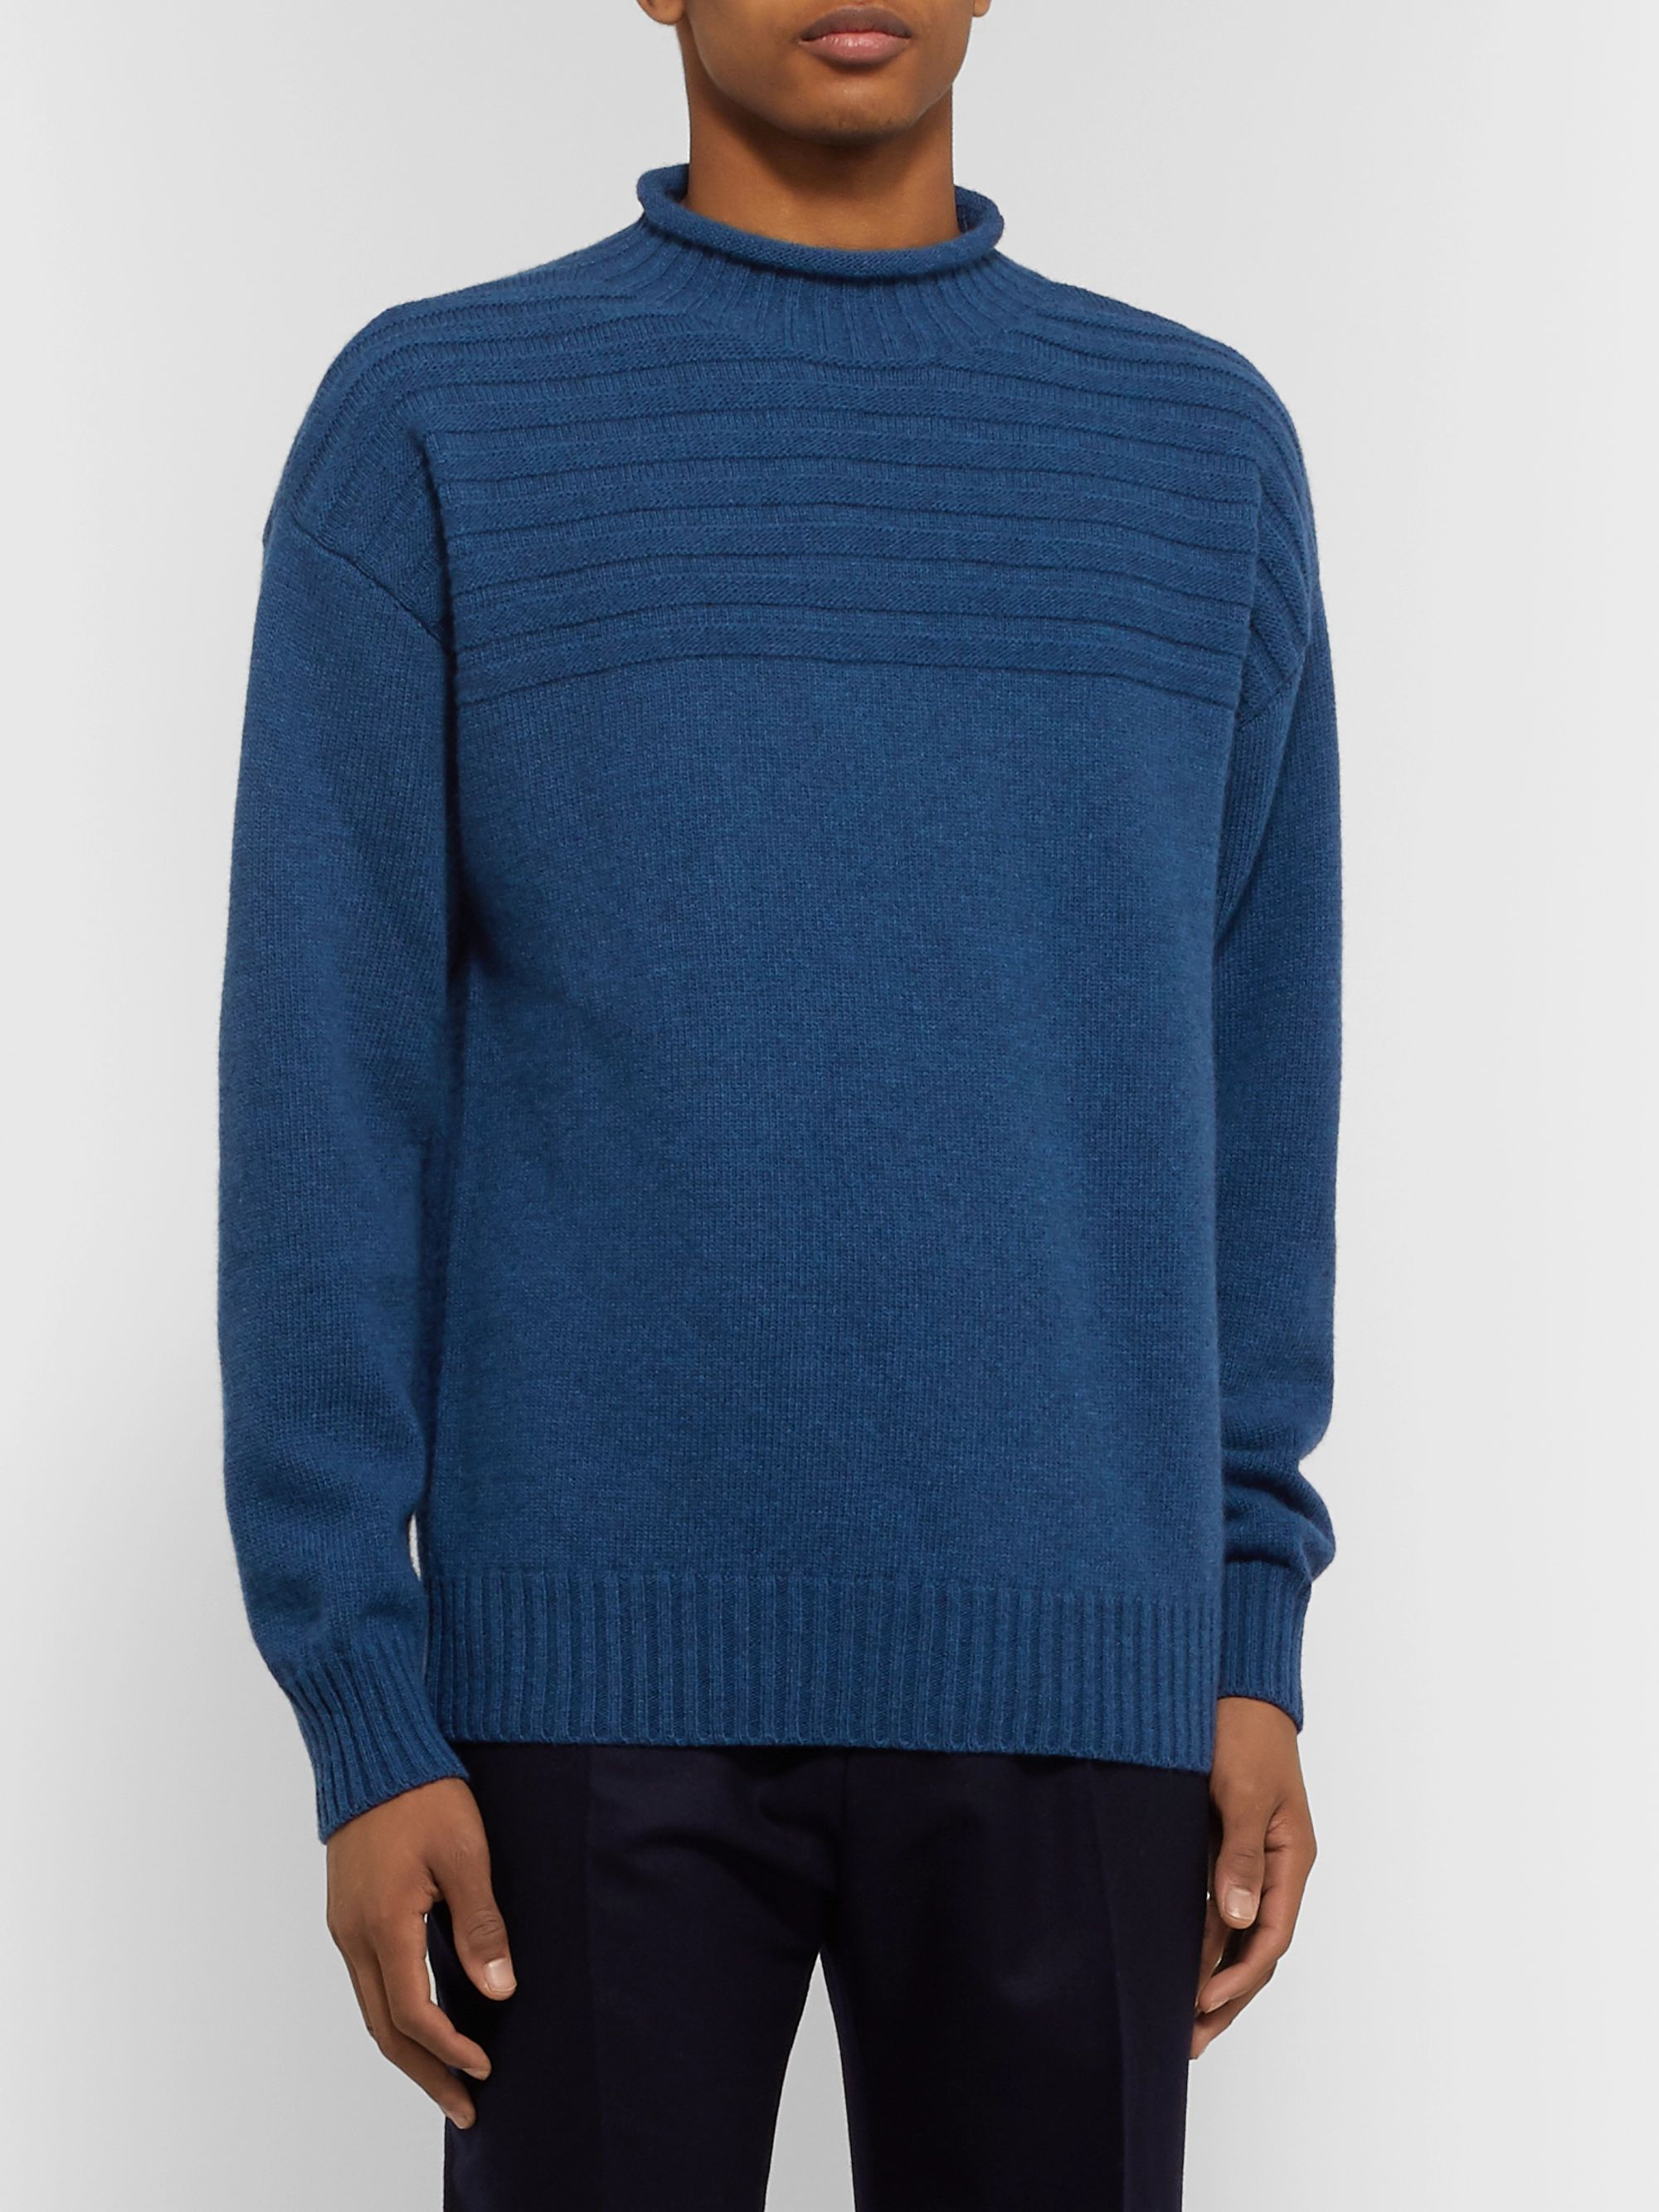 Mr P. Ribbed Virgin Wool Mock-Neck Sweater